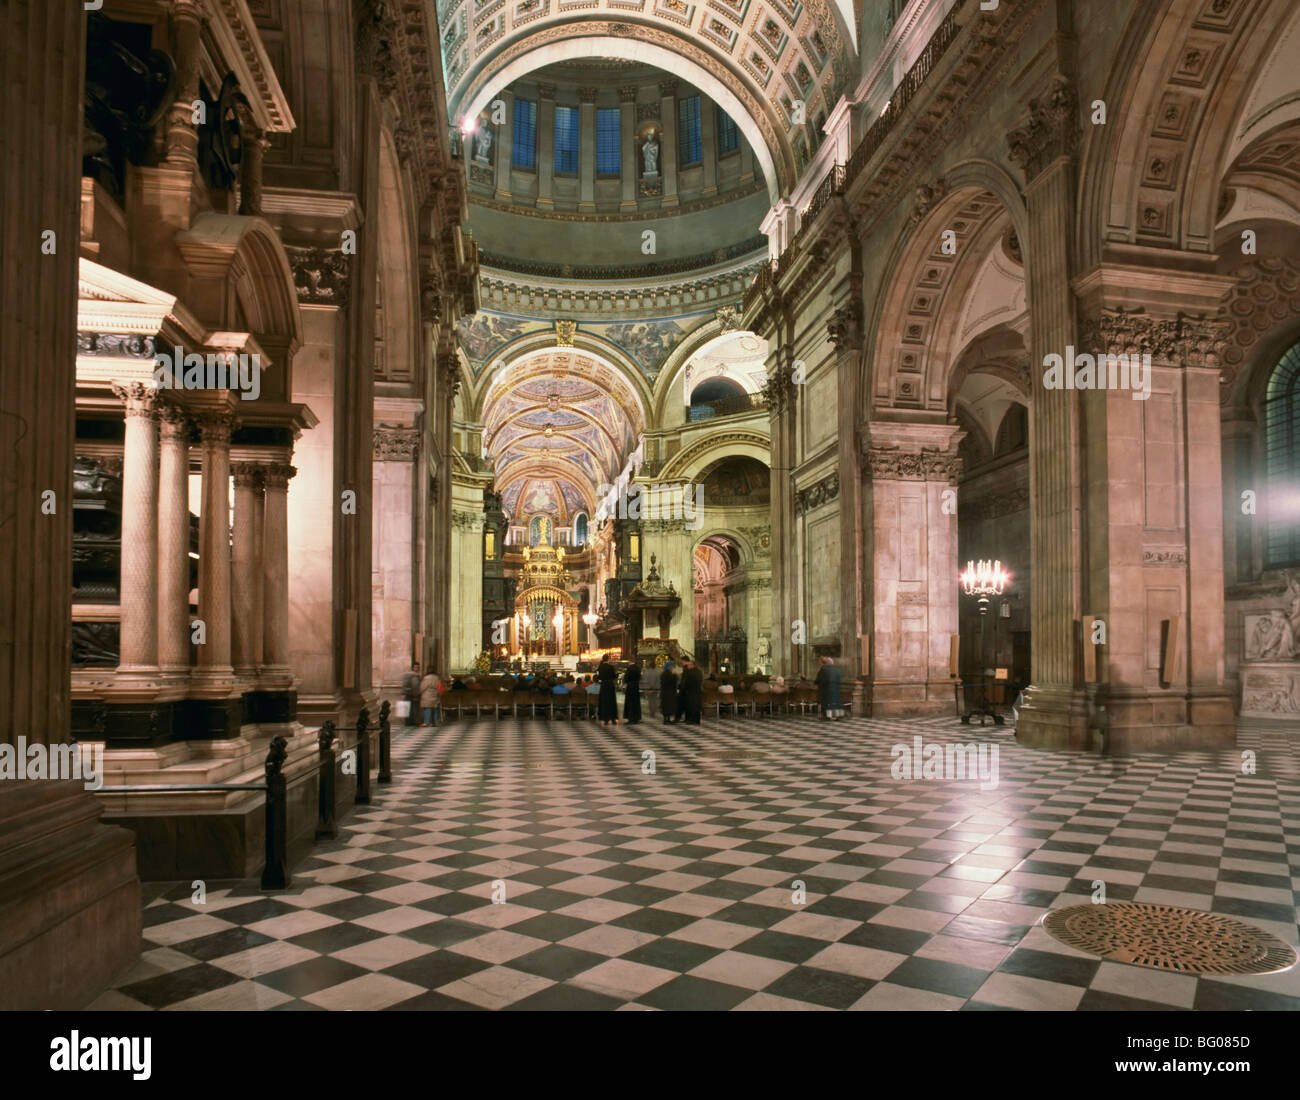 st pauls cathedral in london england essay Free essay: st paul's cathedral in london is the seat of the bishop of london   the bulk are related to the british military with several lists of.